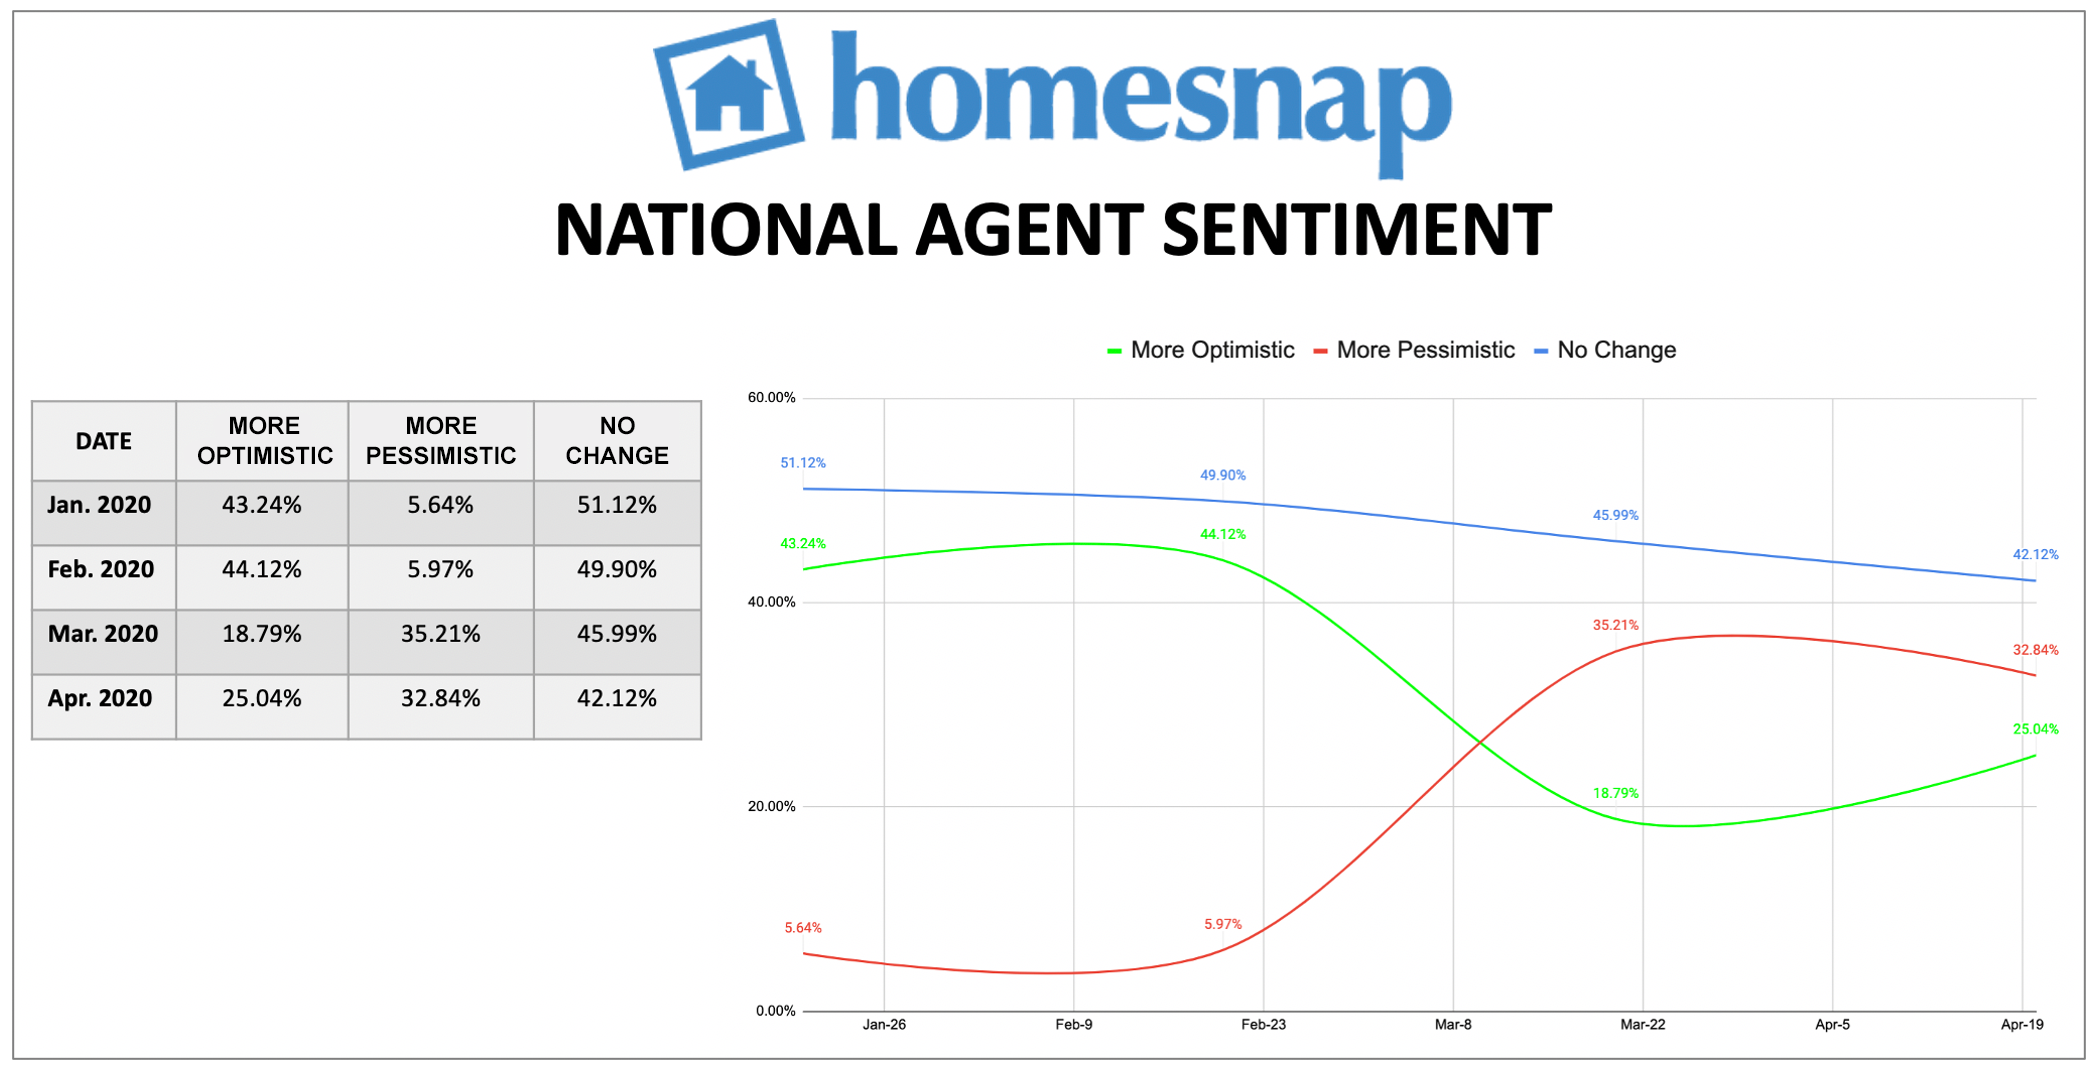 Homesnap national agent sentiment